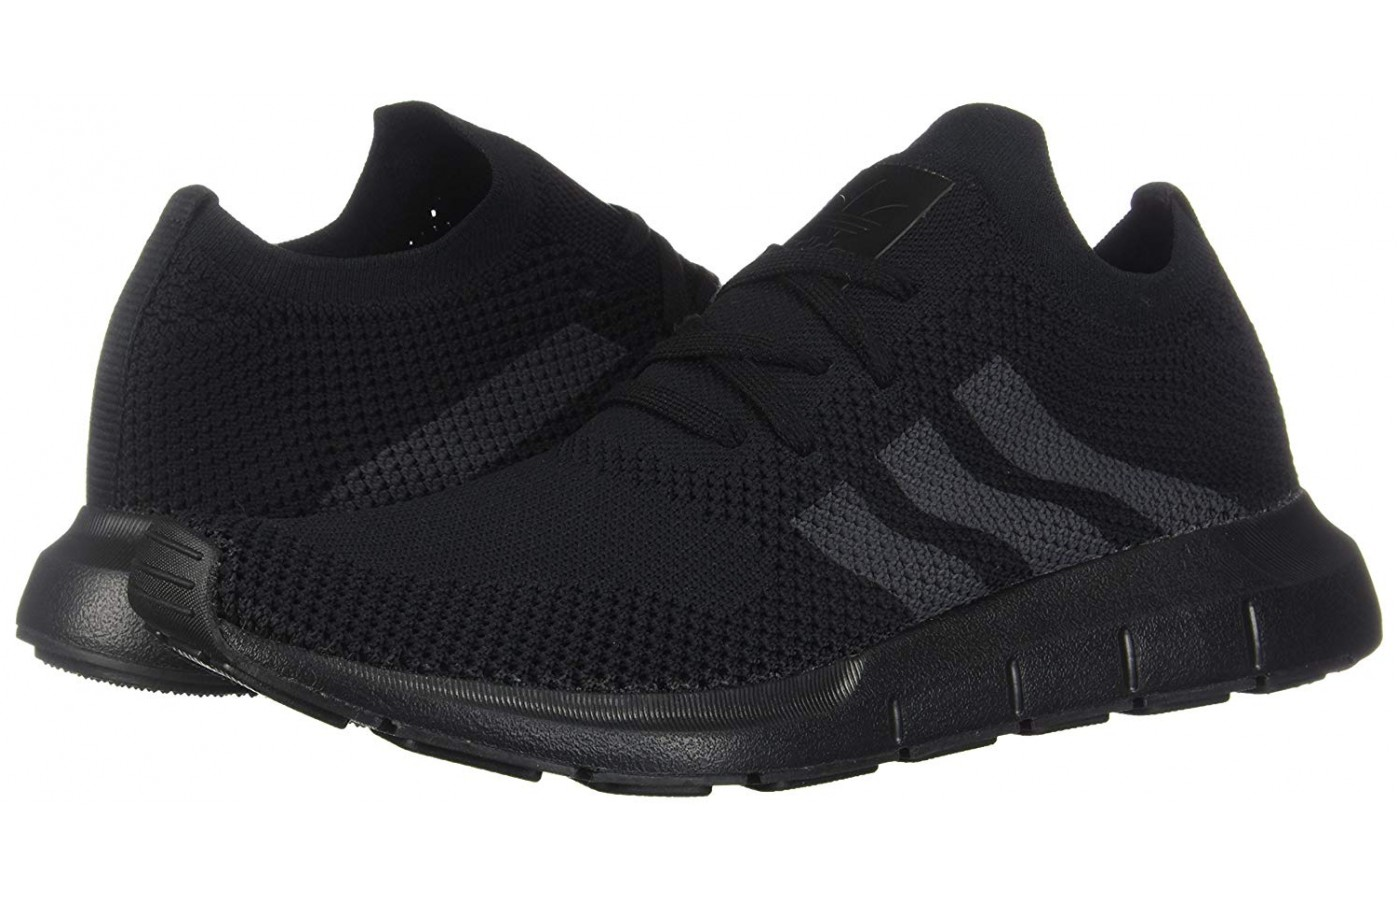 bd53067cd832 Adidas Swift Run Primeknit Tested for Performance - WalkJogRun